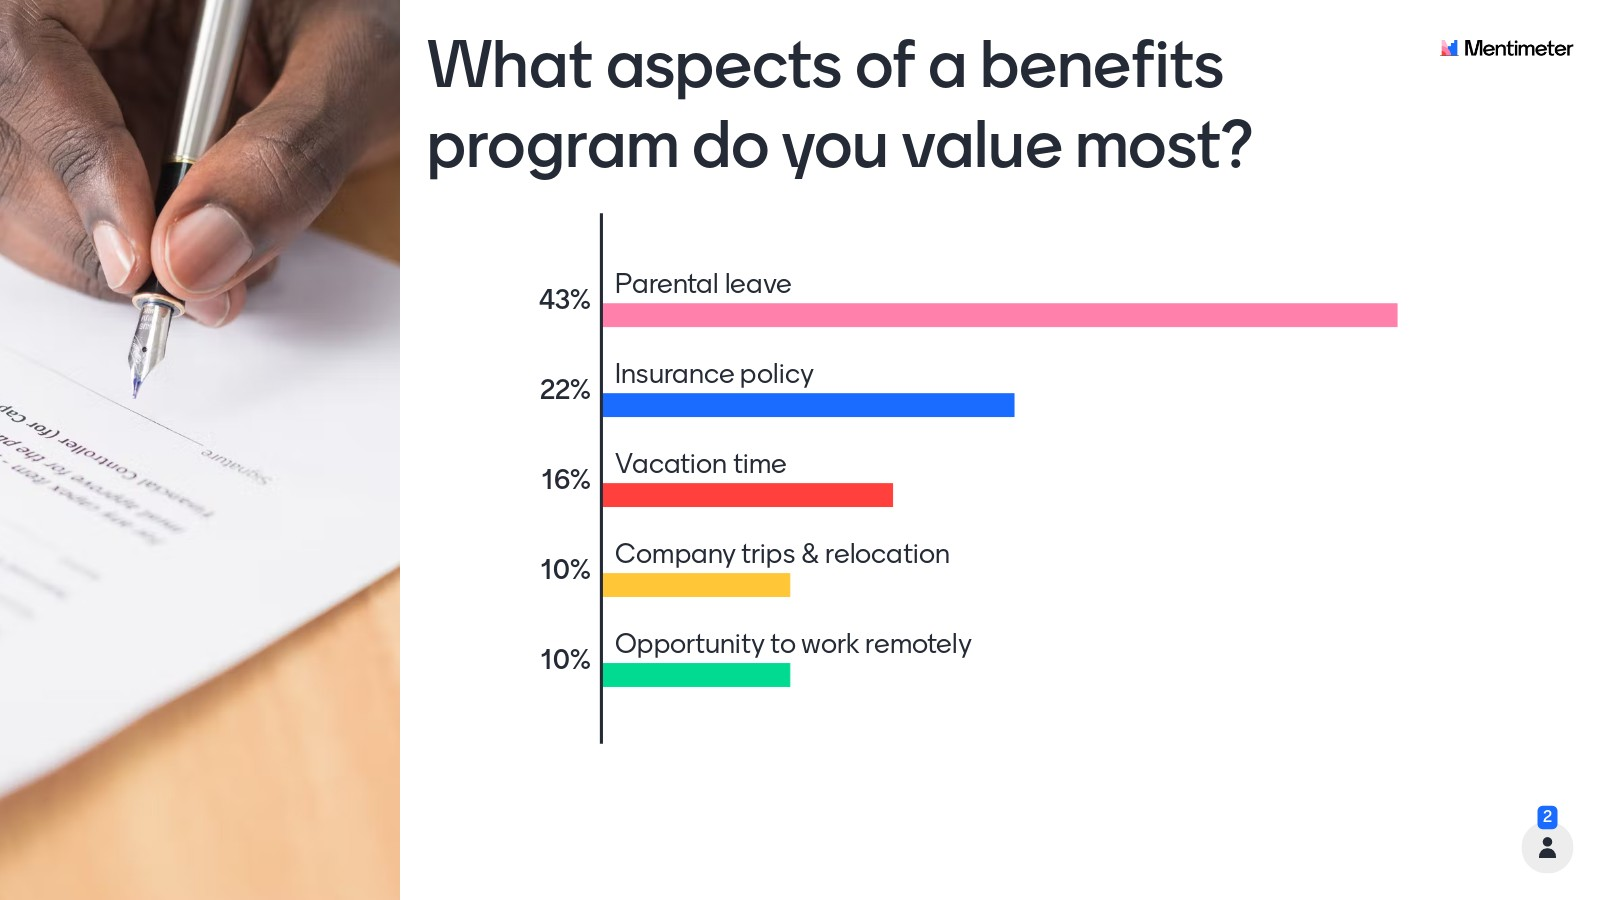 What aspects of a benefits program do you value most?